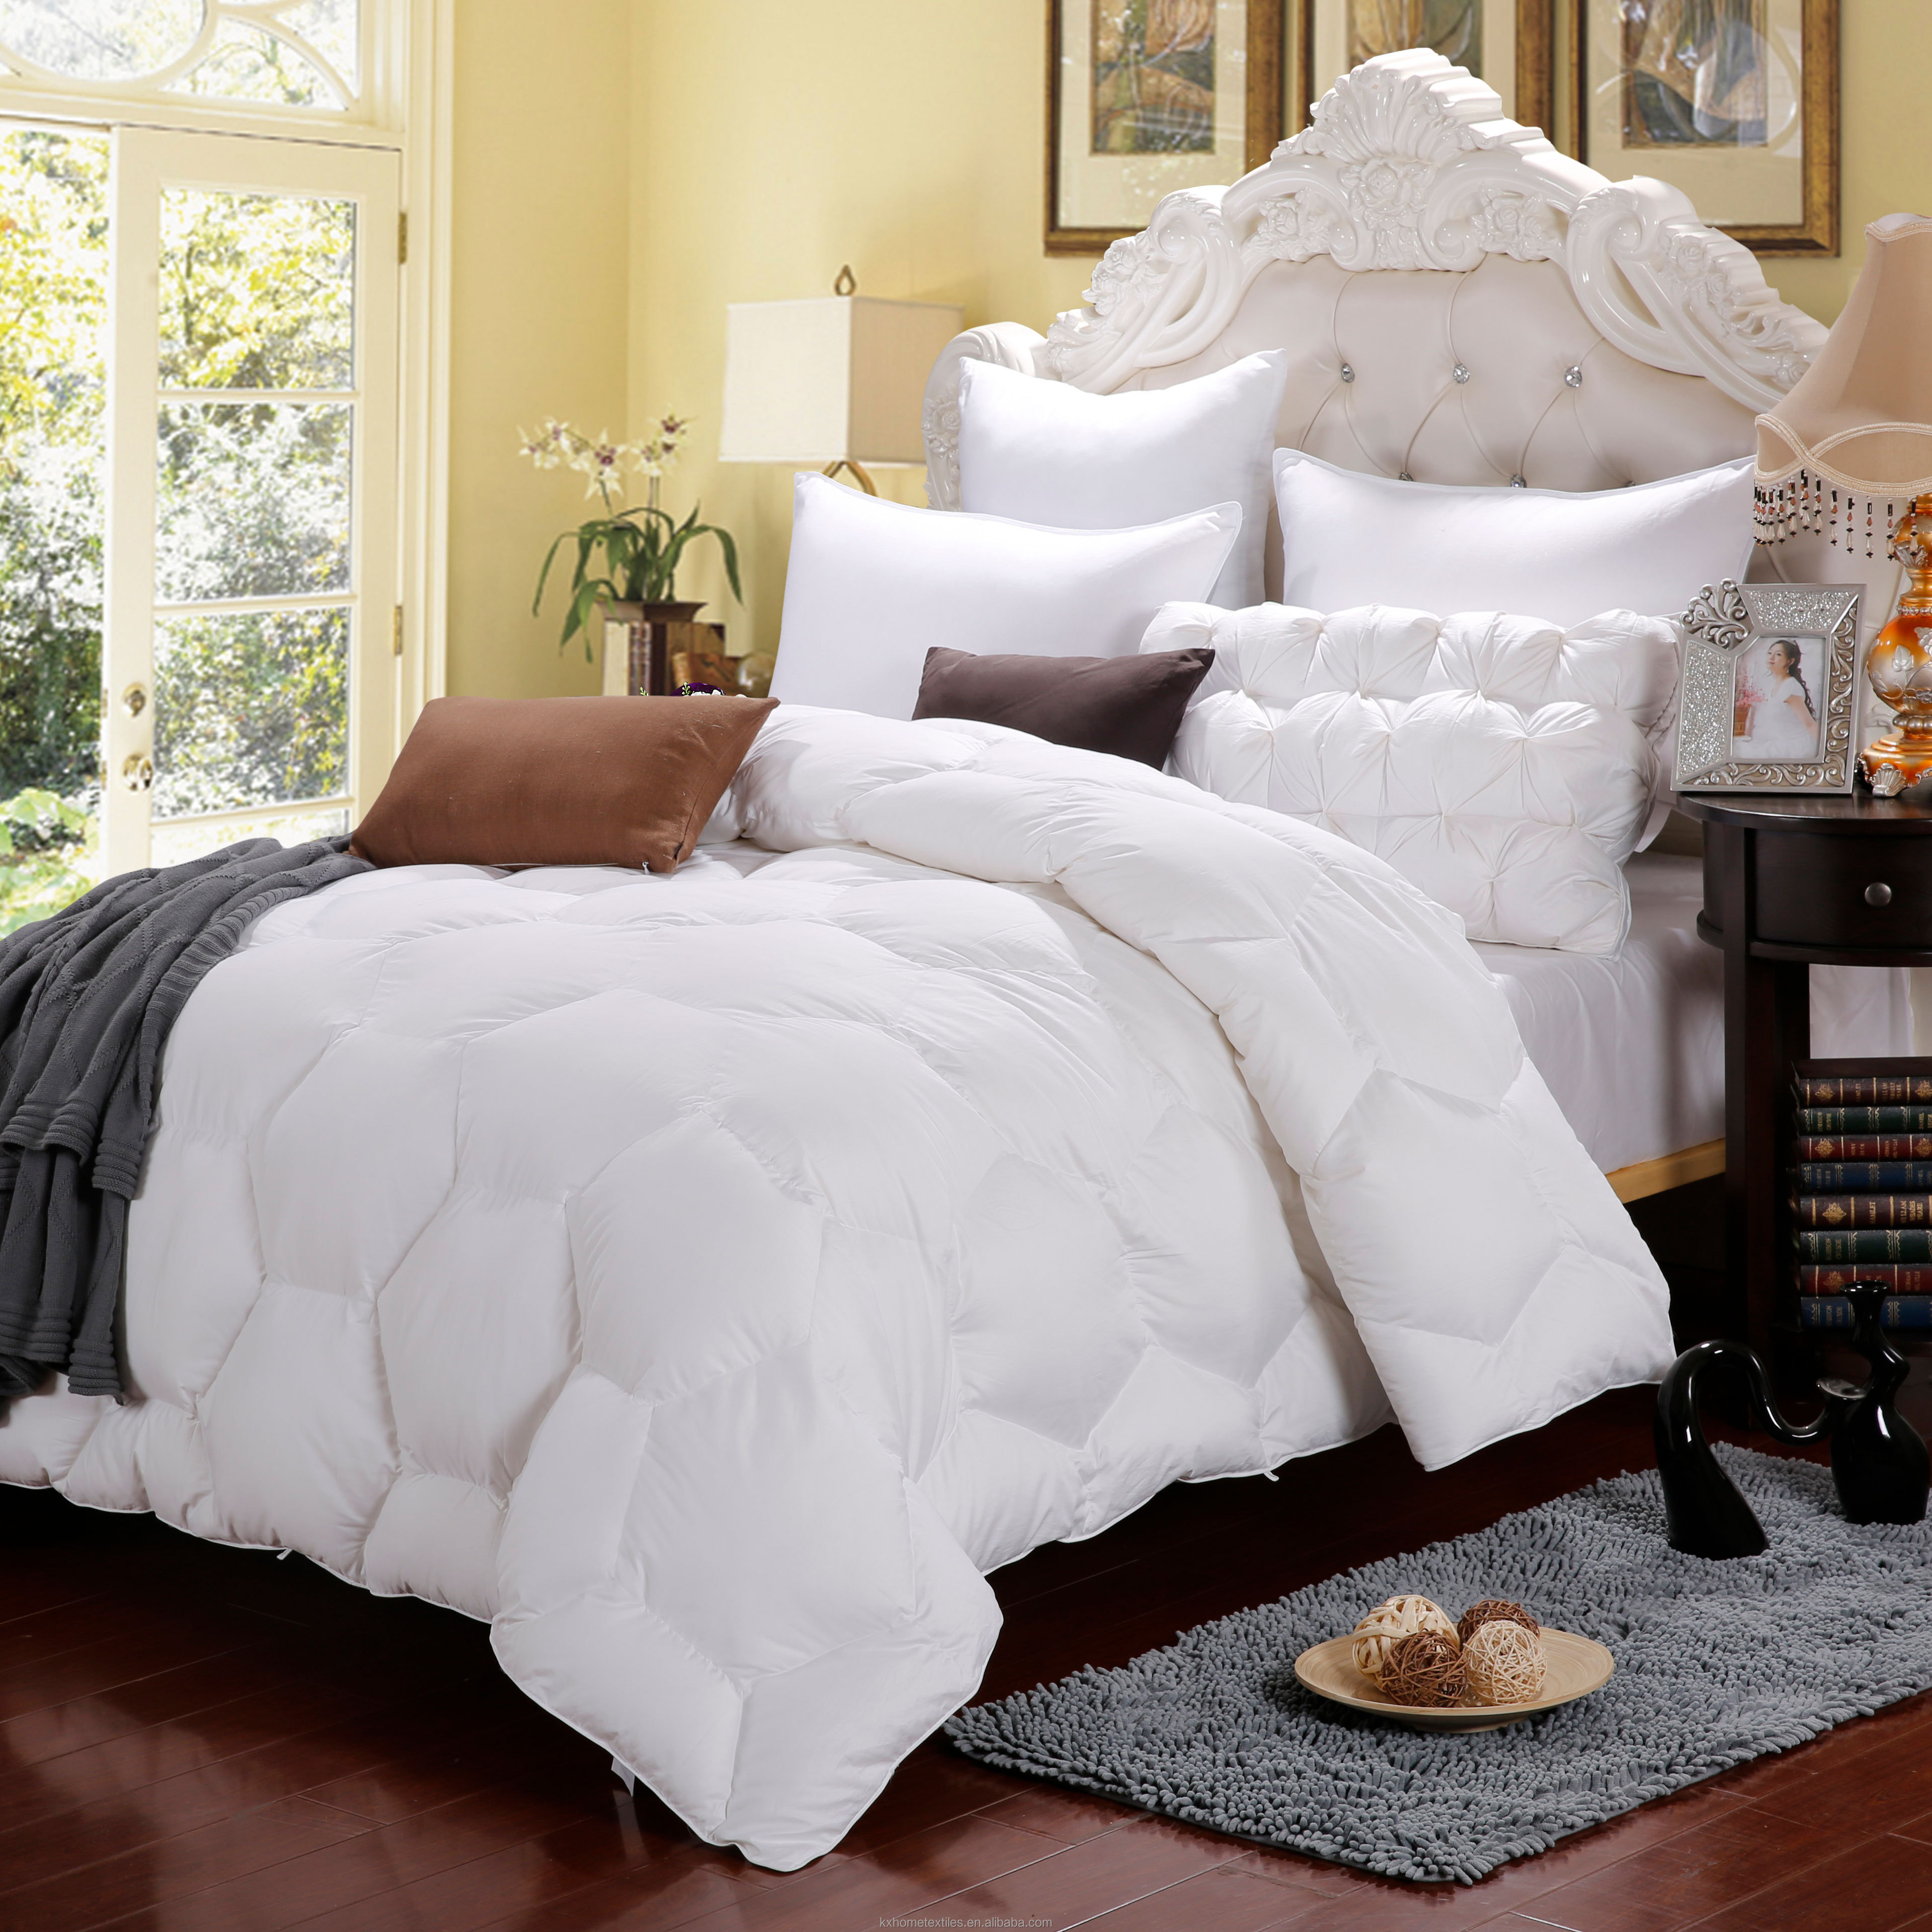 100% percent cotton comforter with natural cotton filling